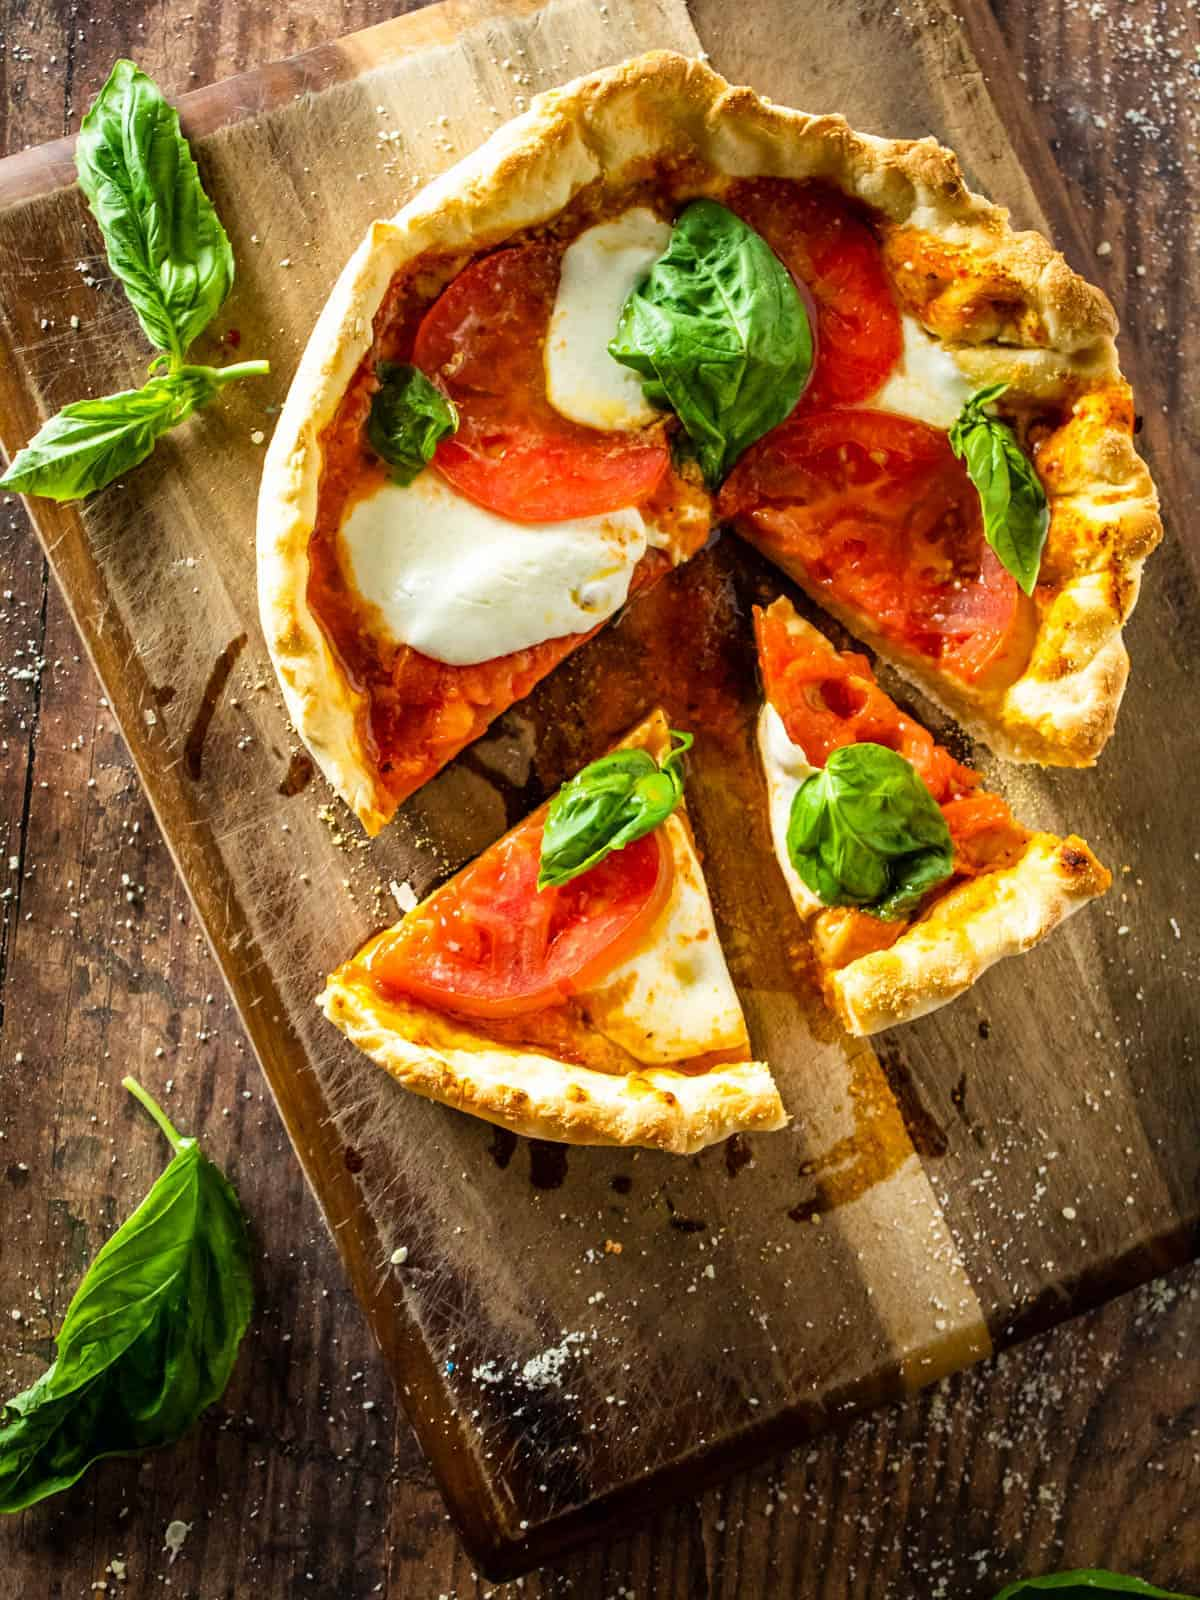 margherita pizza with two slices cut from it